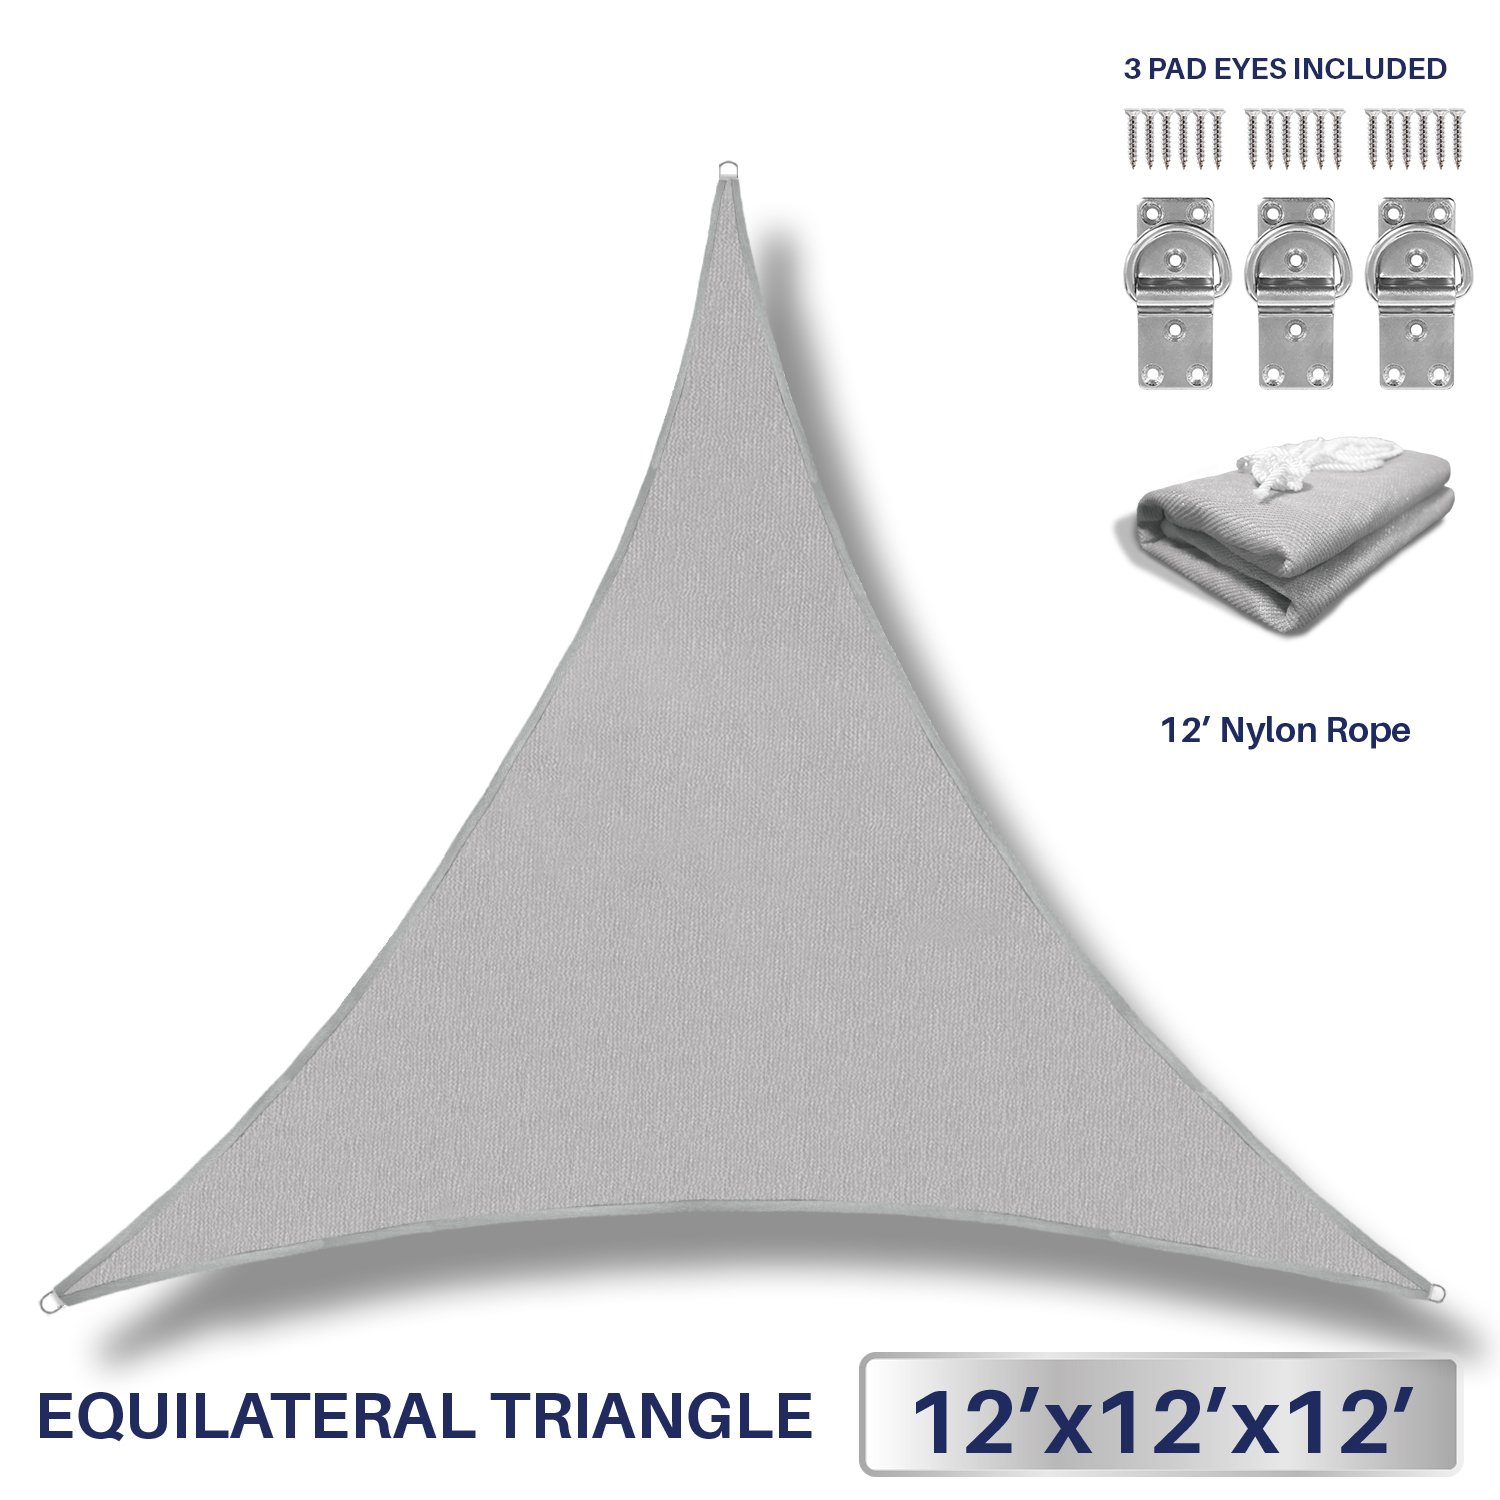 12' x 12' x 12' Sun Shade Sail UV Block Fabric Canopy in Light Grey Triangle for Patio Garden Patio 3 Pad Eyes Included Customized Sizes Available (3 Year Warranty)